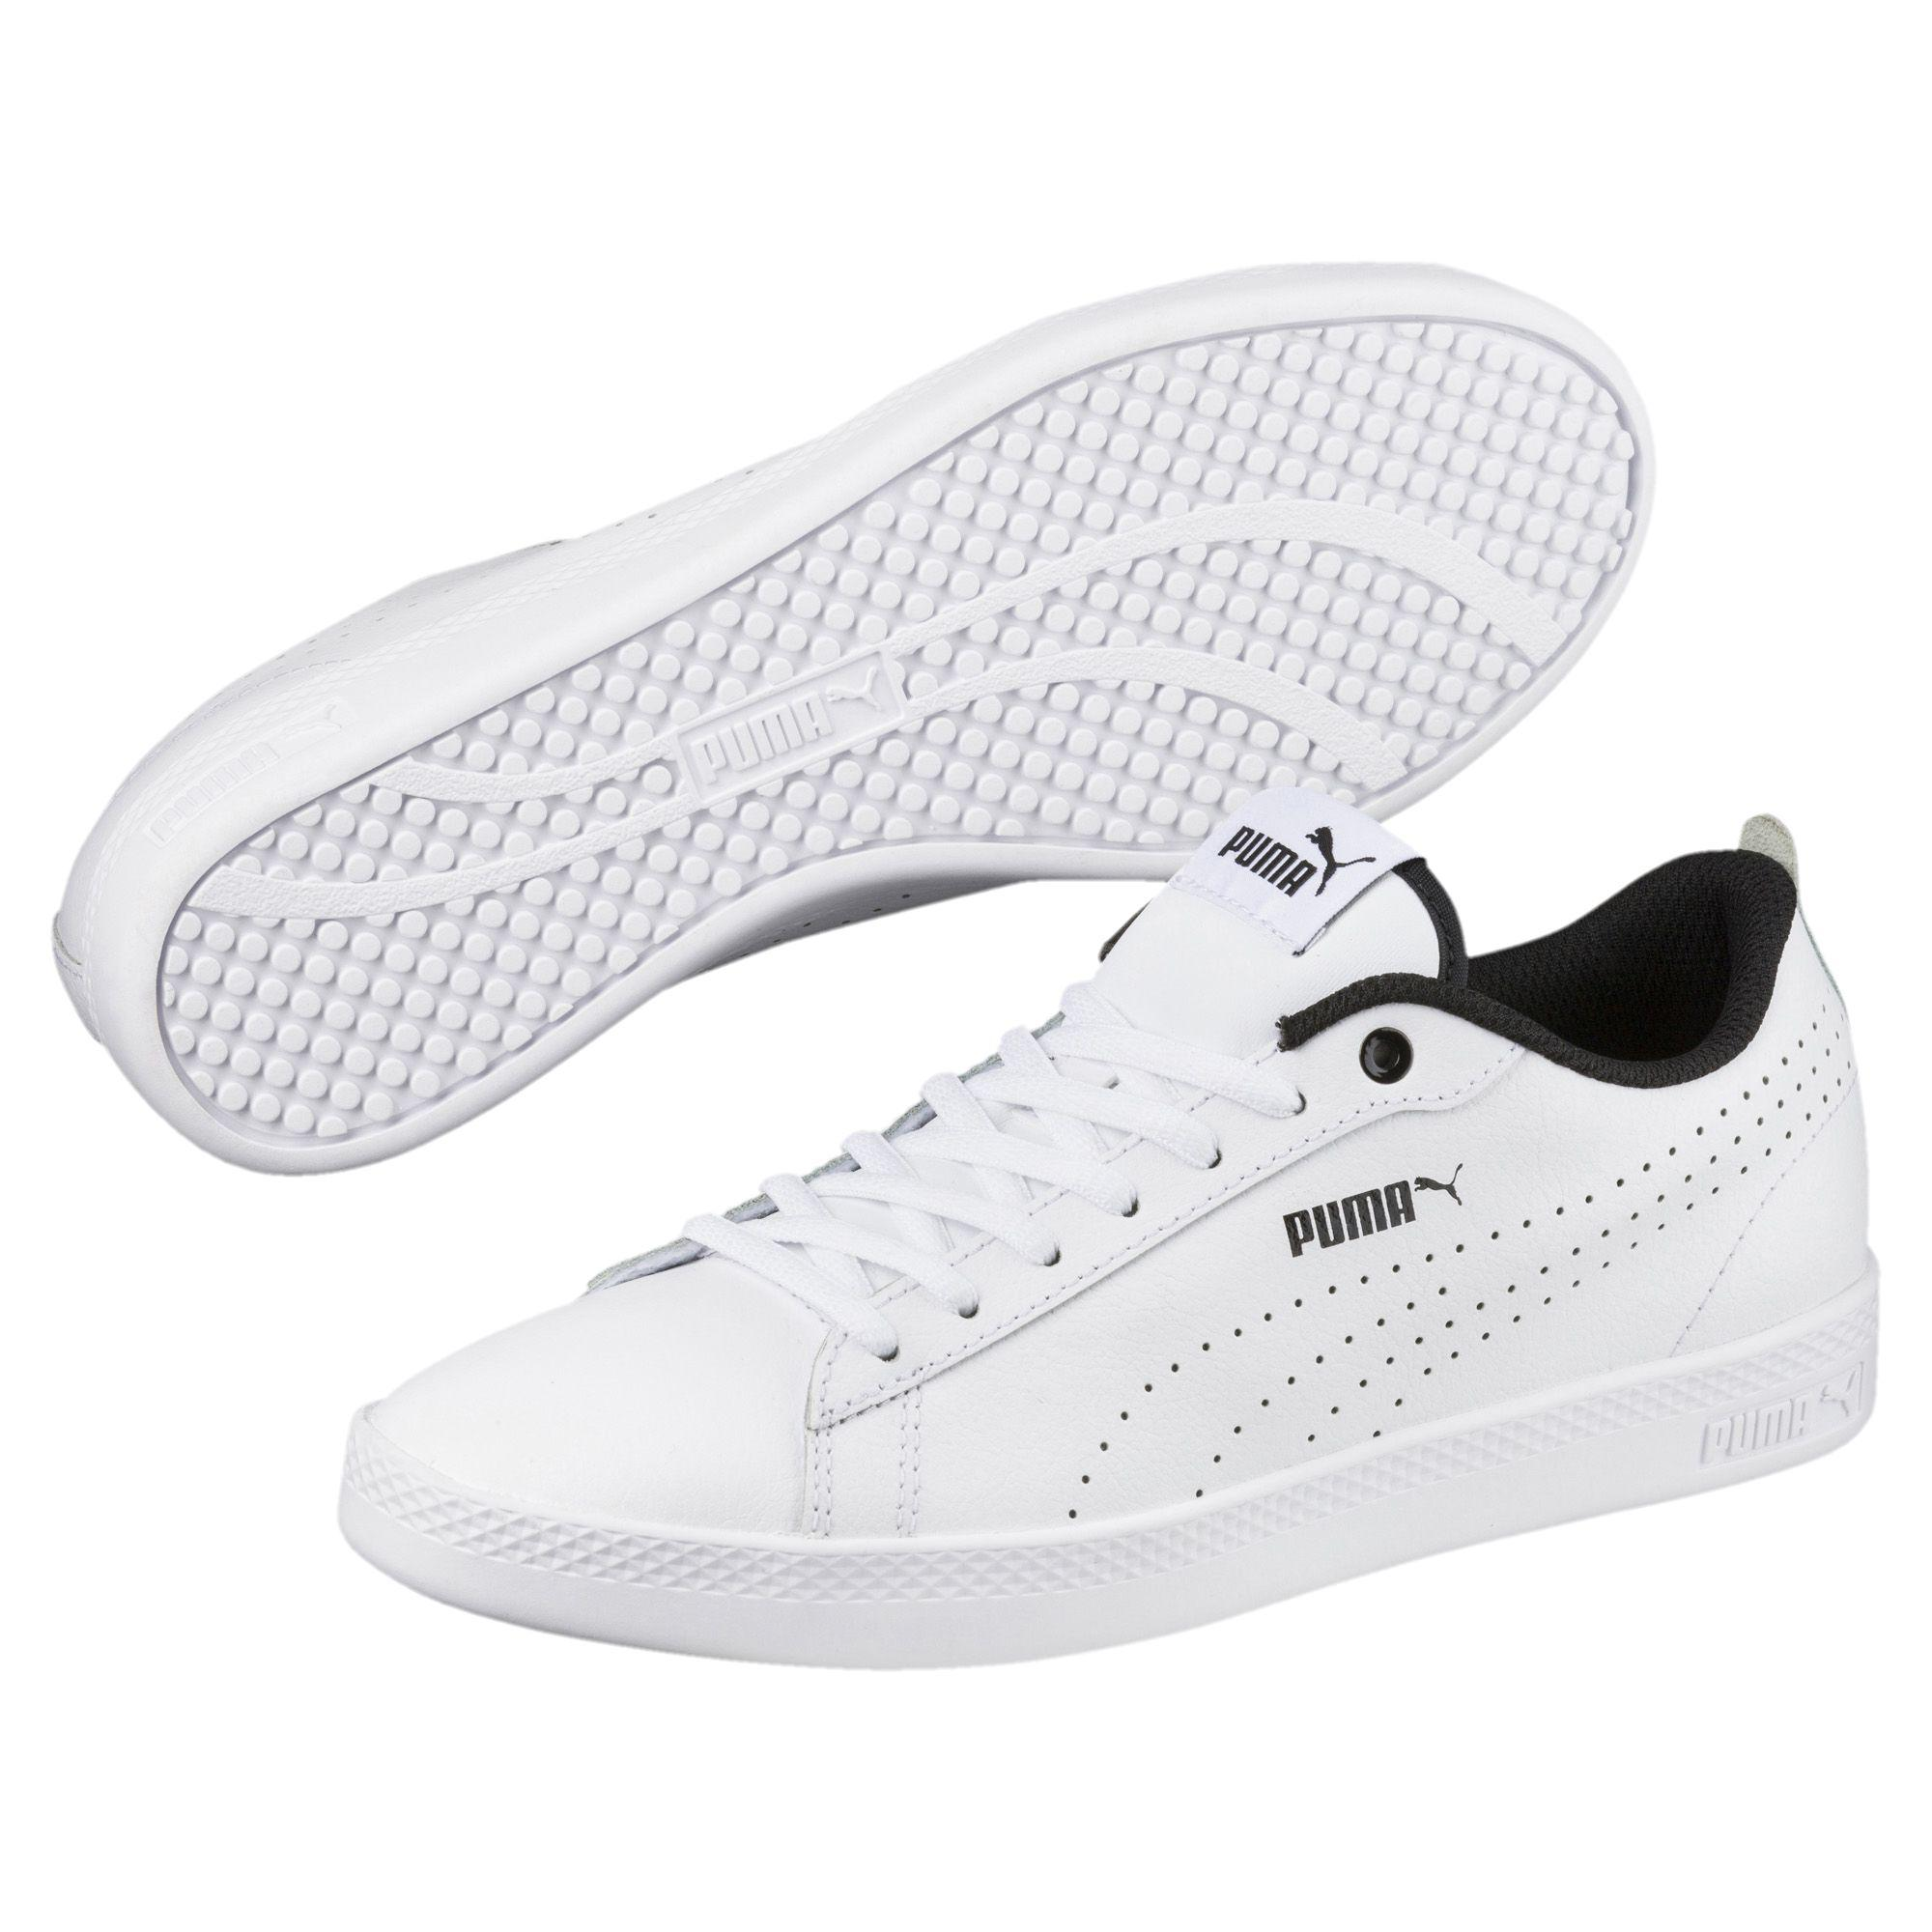 Lyst - PUMA Smash V2 L Perf Women s Sneakers in White b5e5221a4